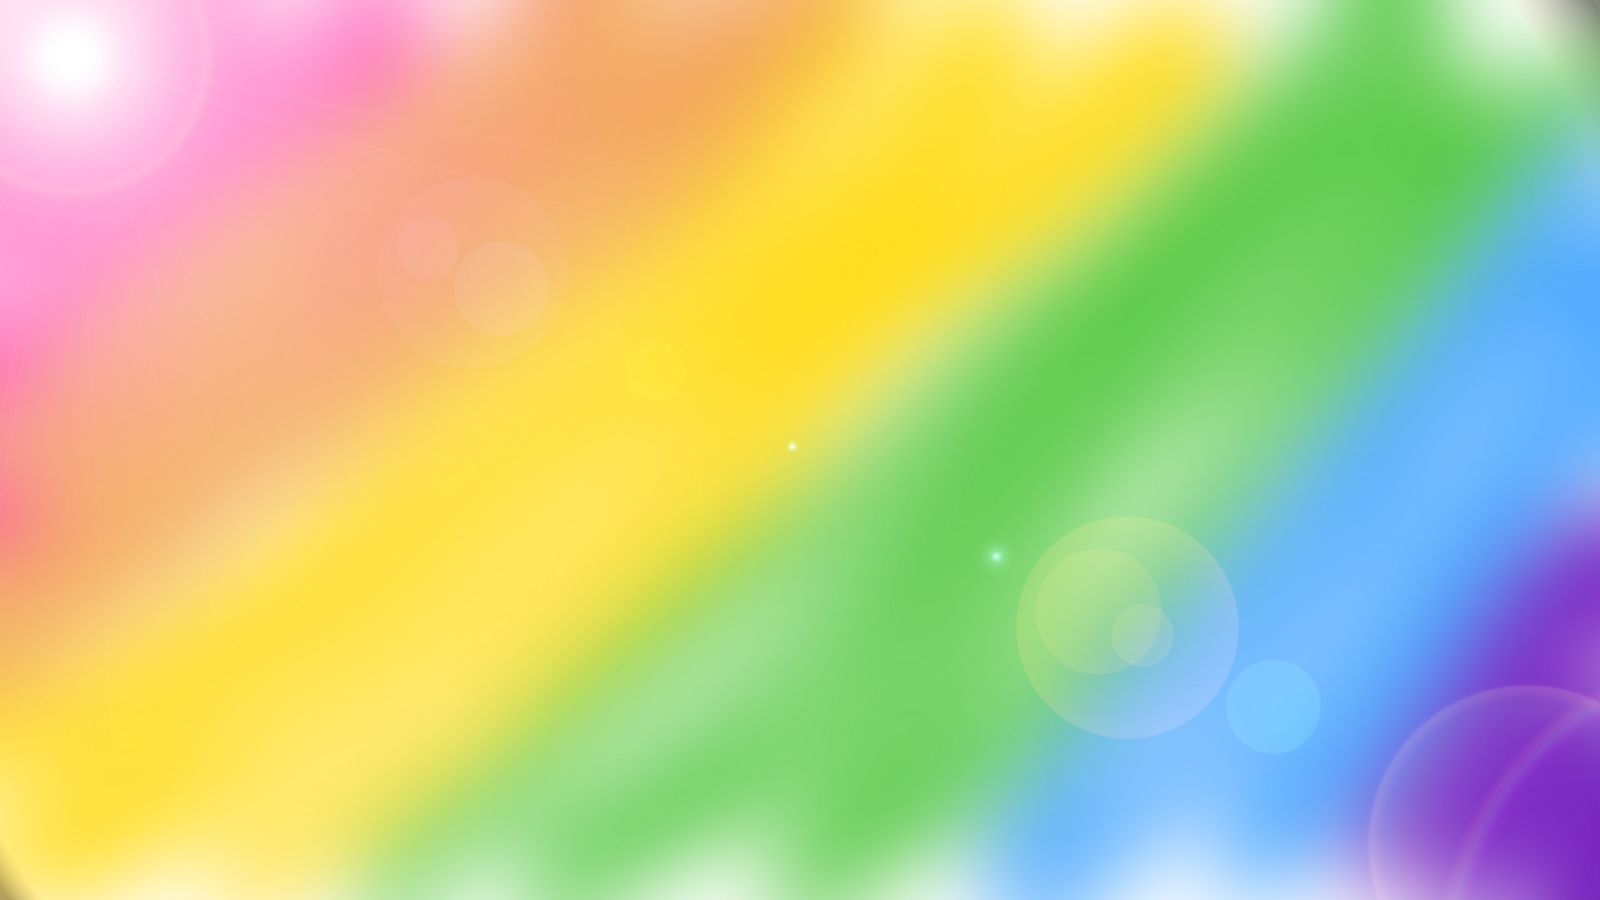 Rainbow Wallpaper Best HD